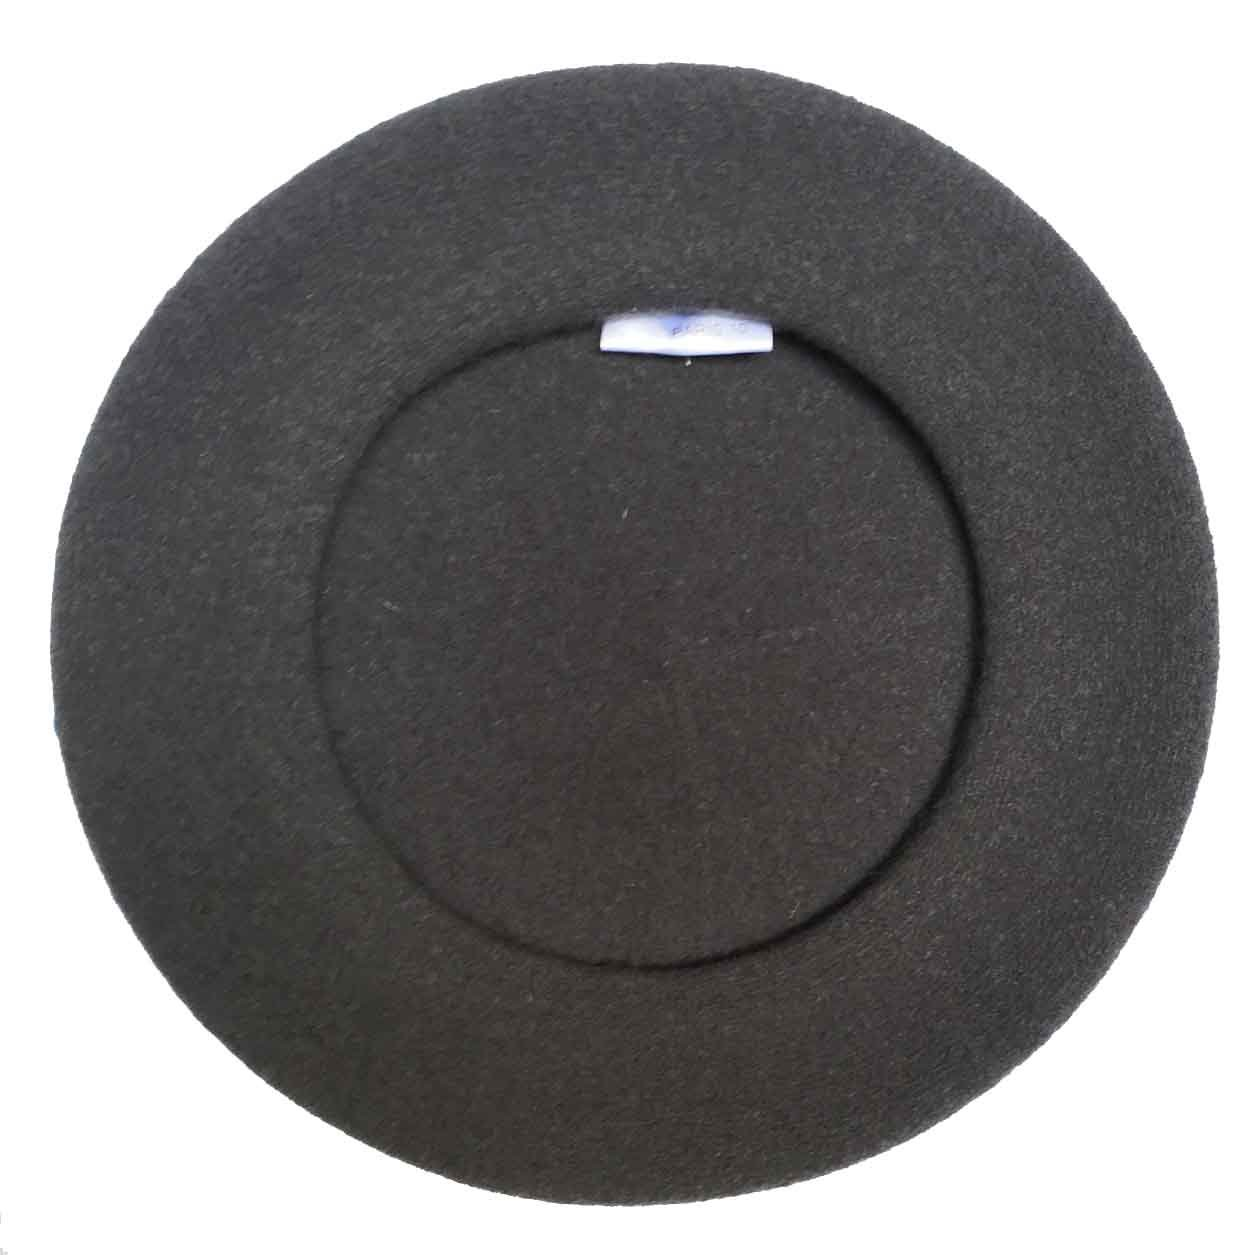 Laulhere Traditional French Wool Beret, Dark Gray by Laulhere